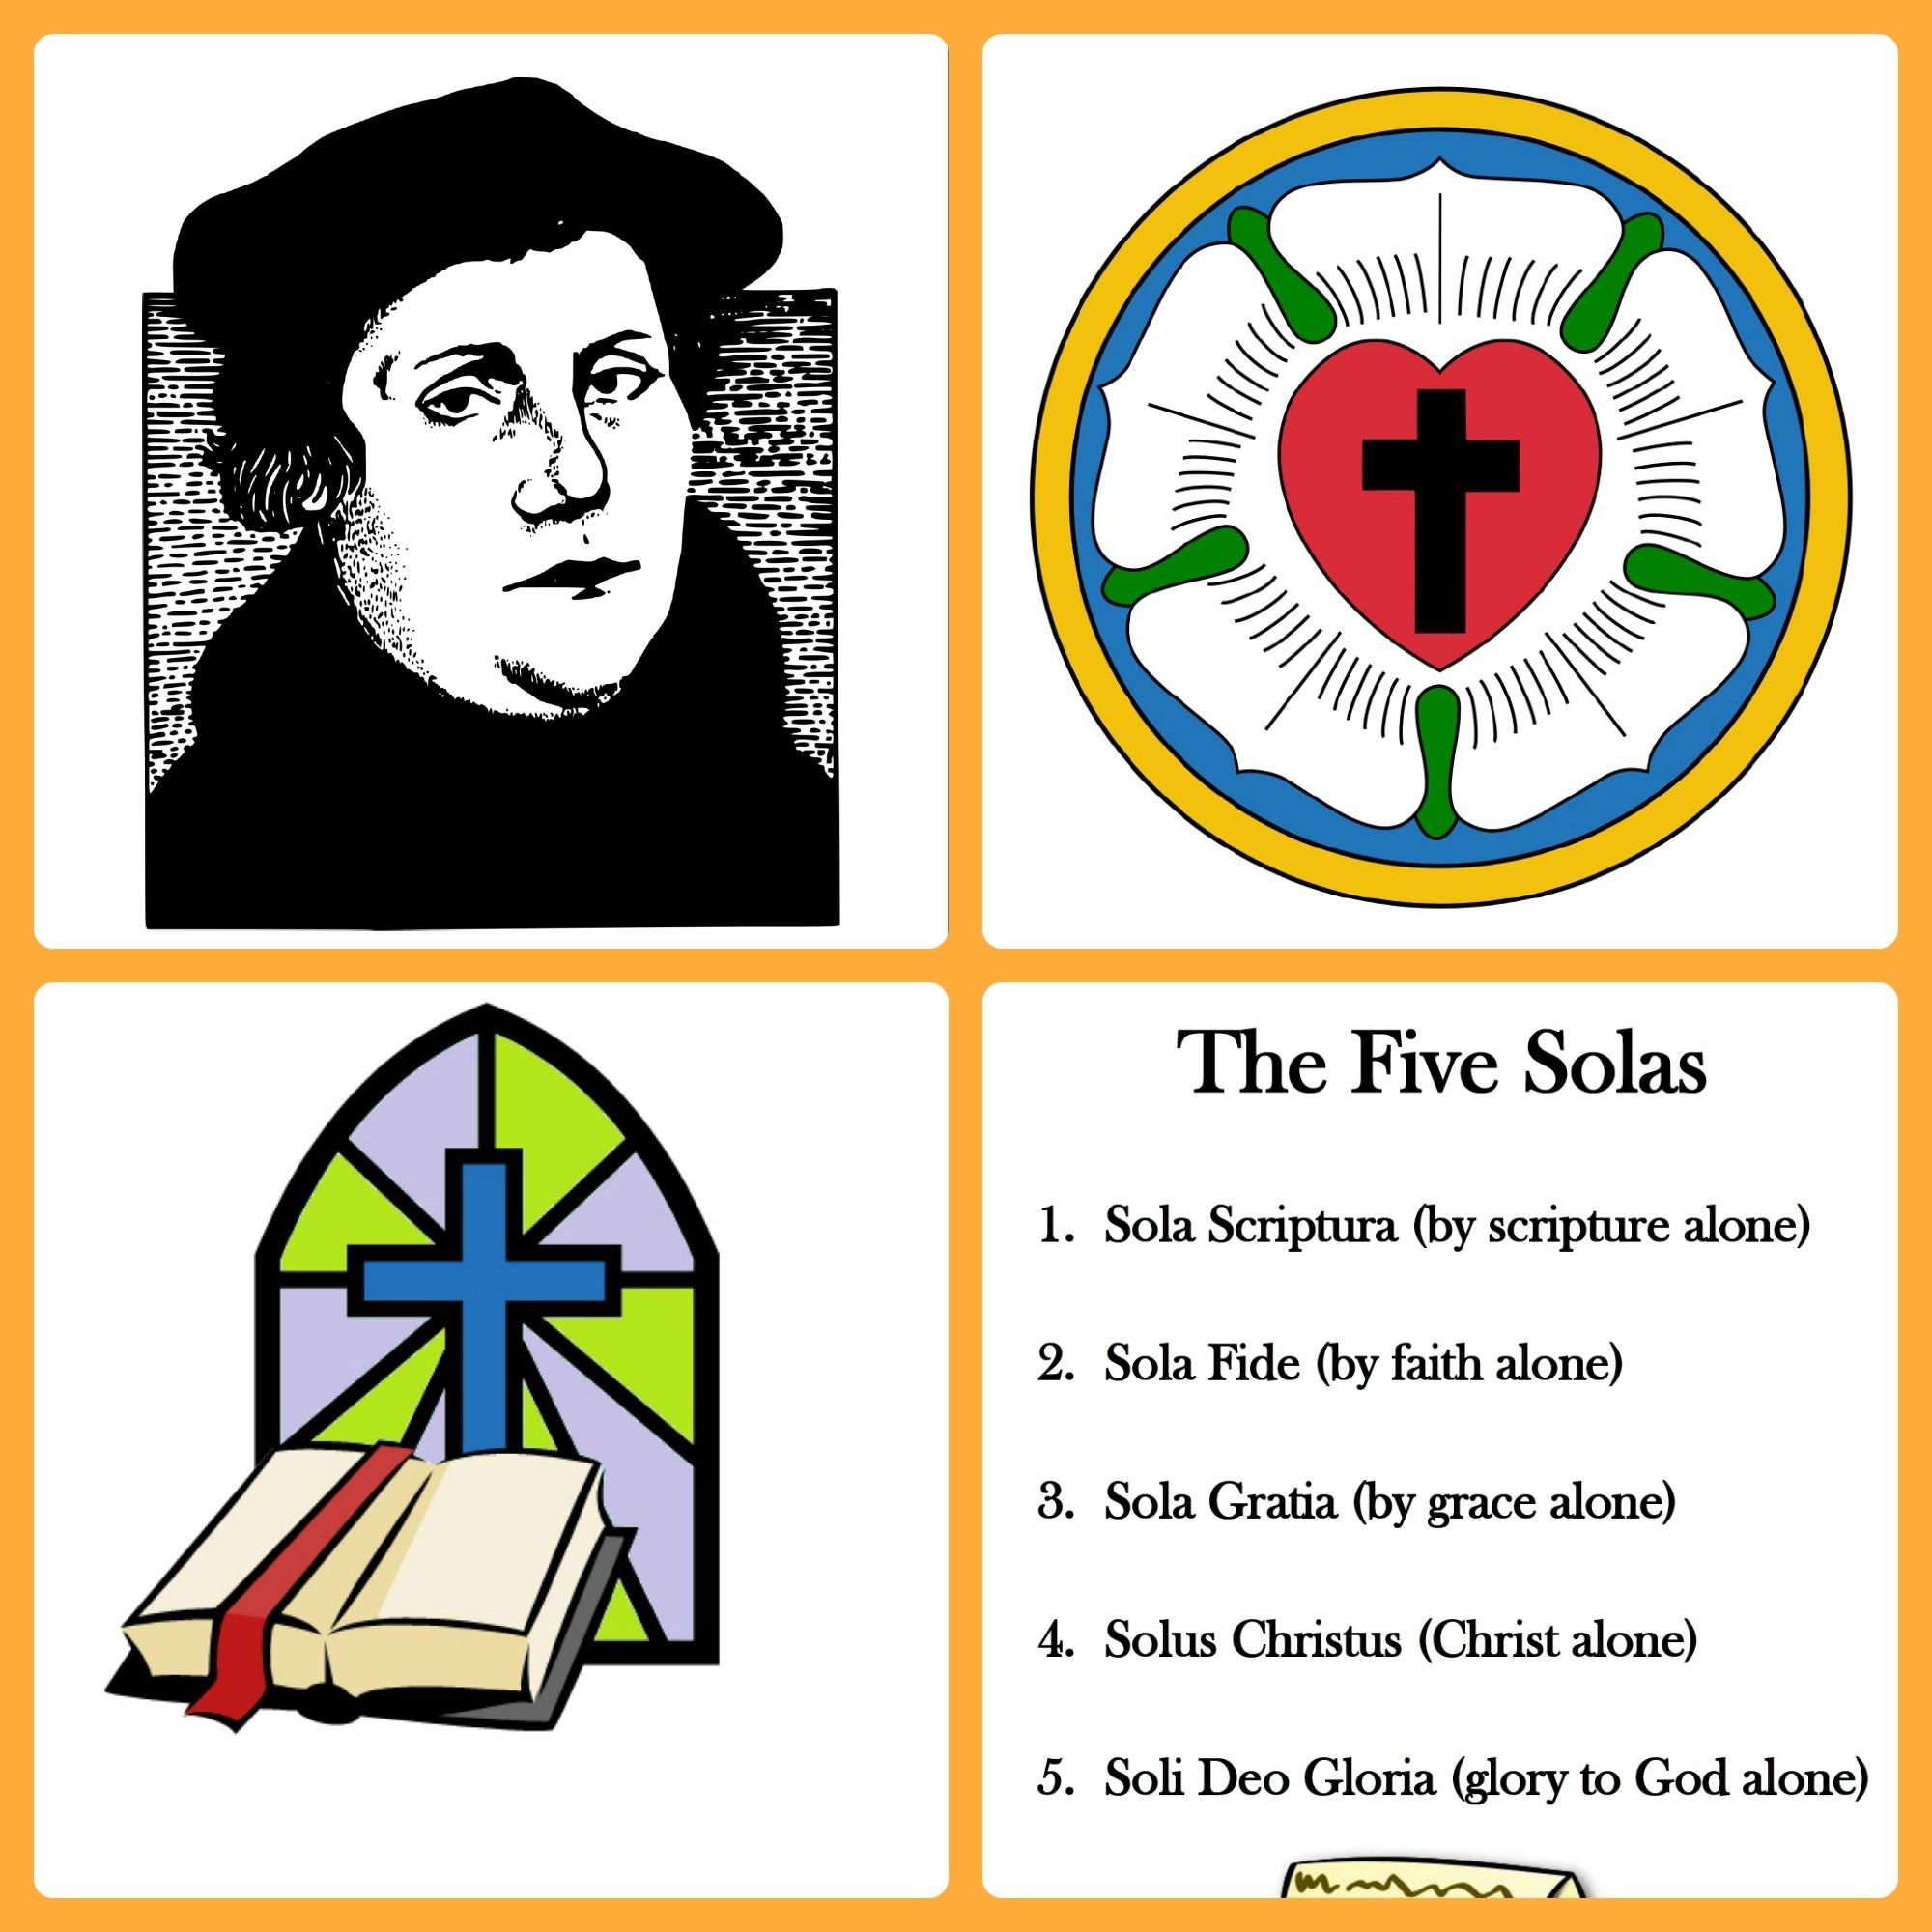 did you know that on october 31 1517 martin luther nailed his 95